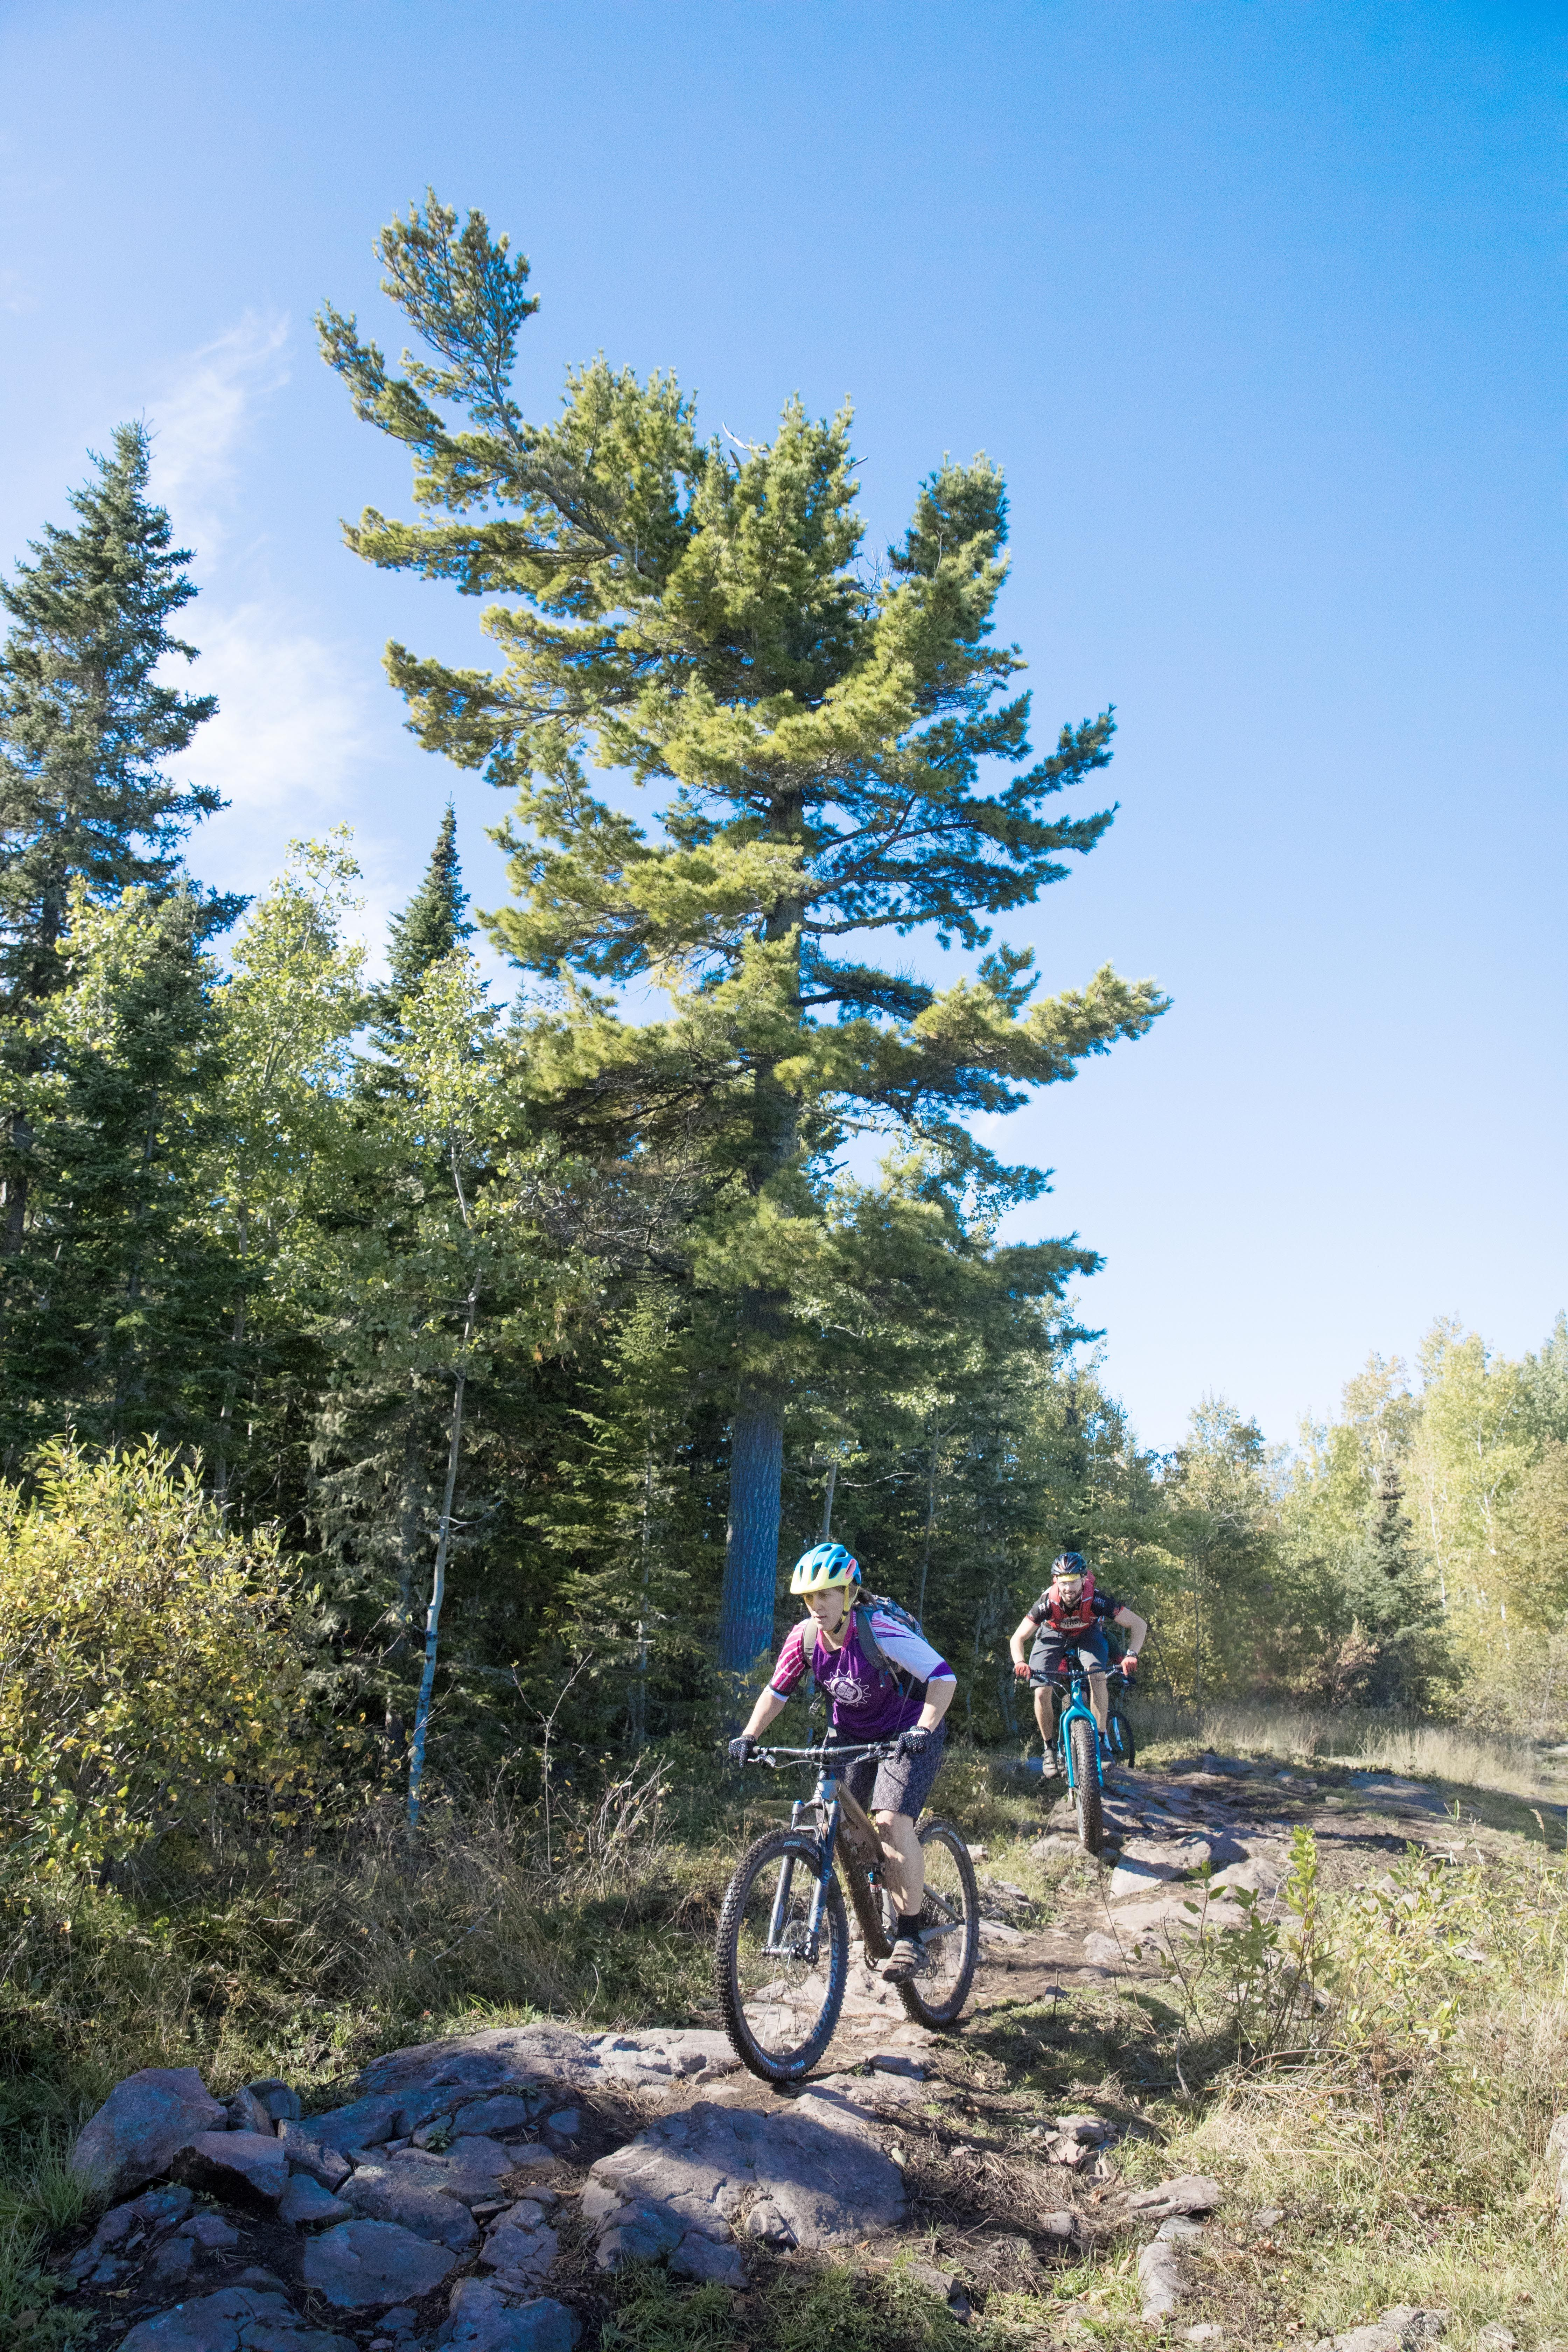 Best Mountain Bike Trails - 6 Trails You Didn't Know About